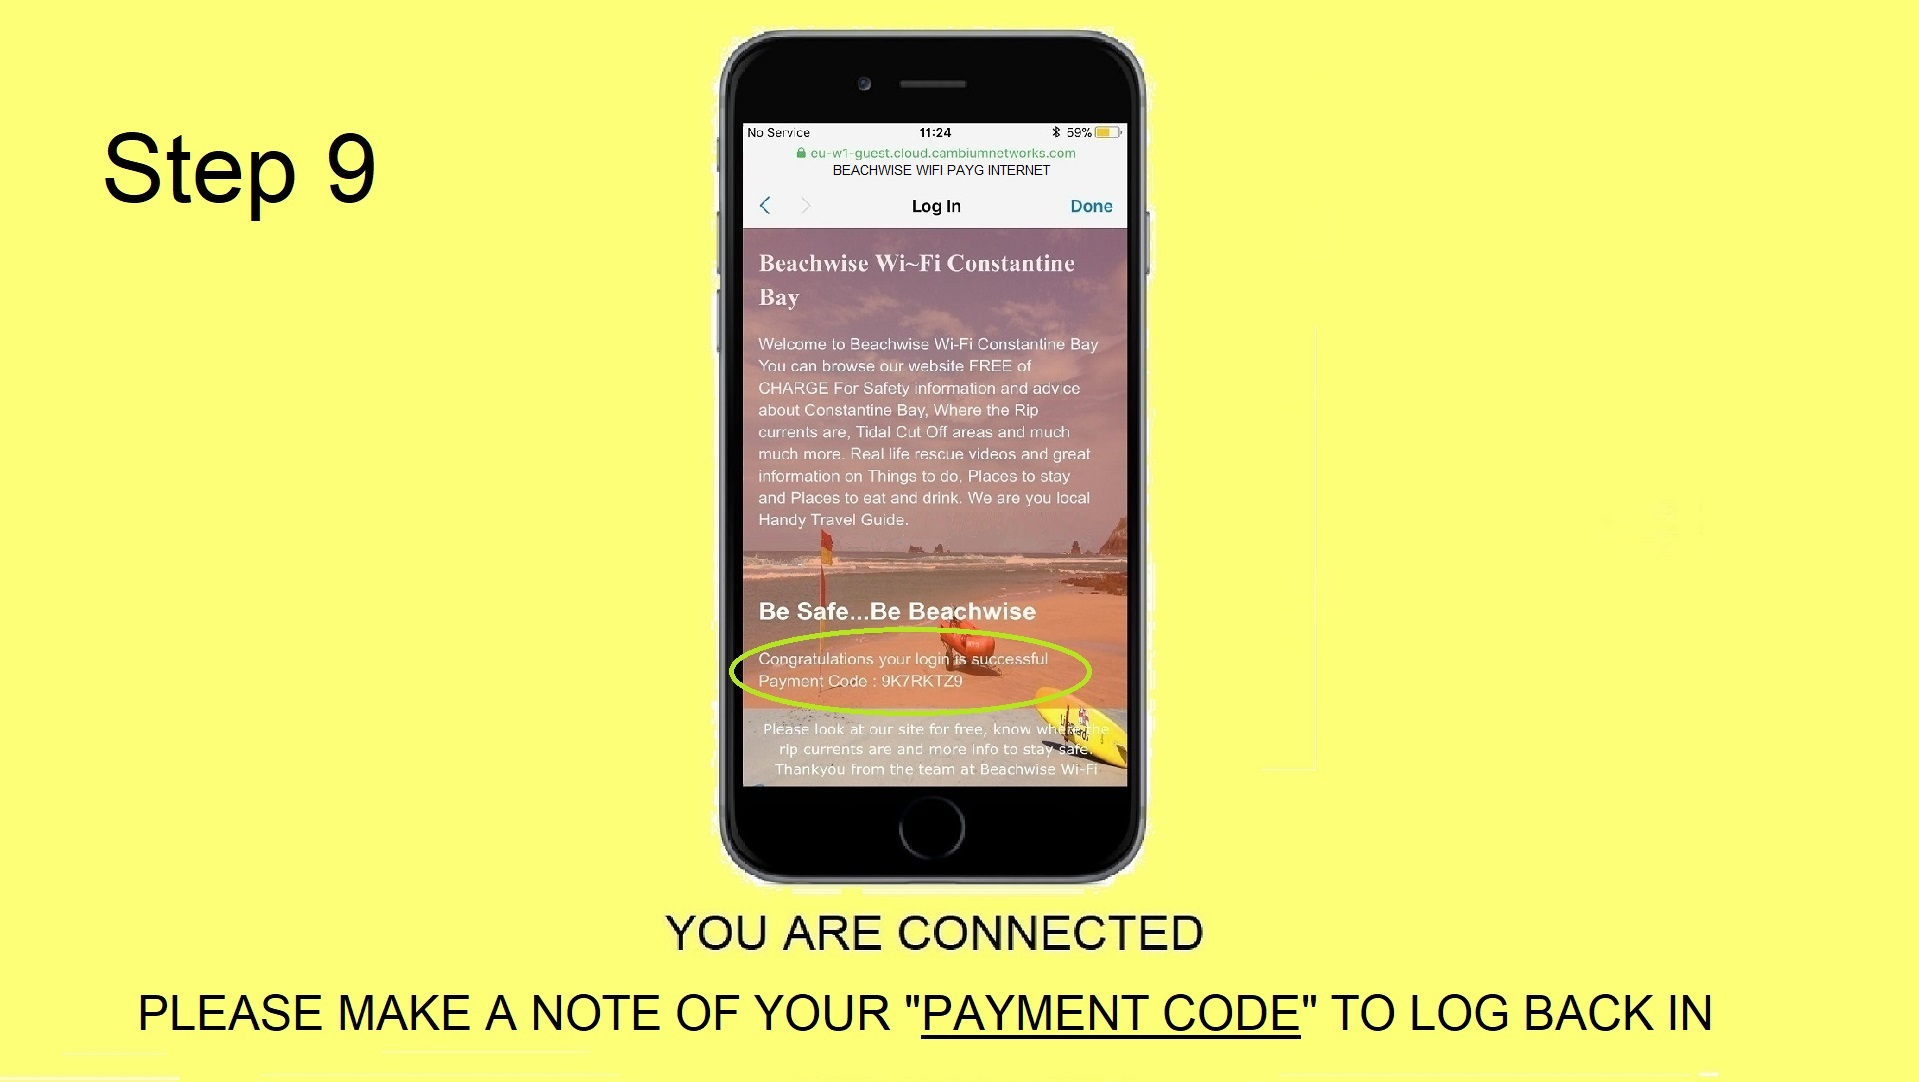 9.complete-and-payment-code-for-logging-back-in